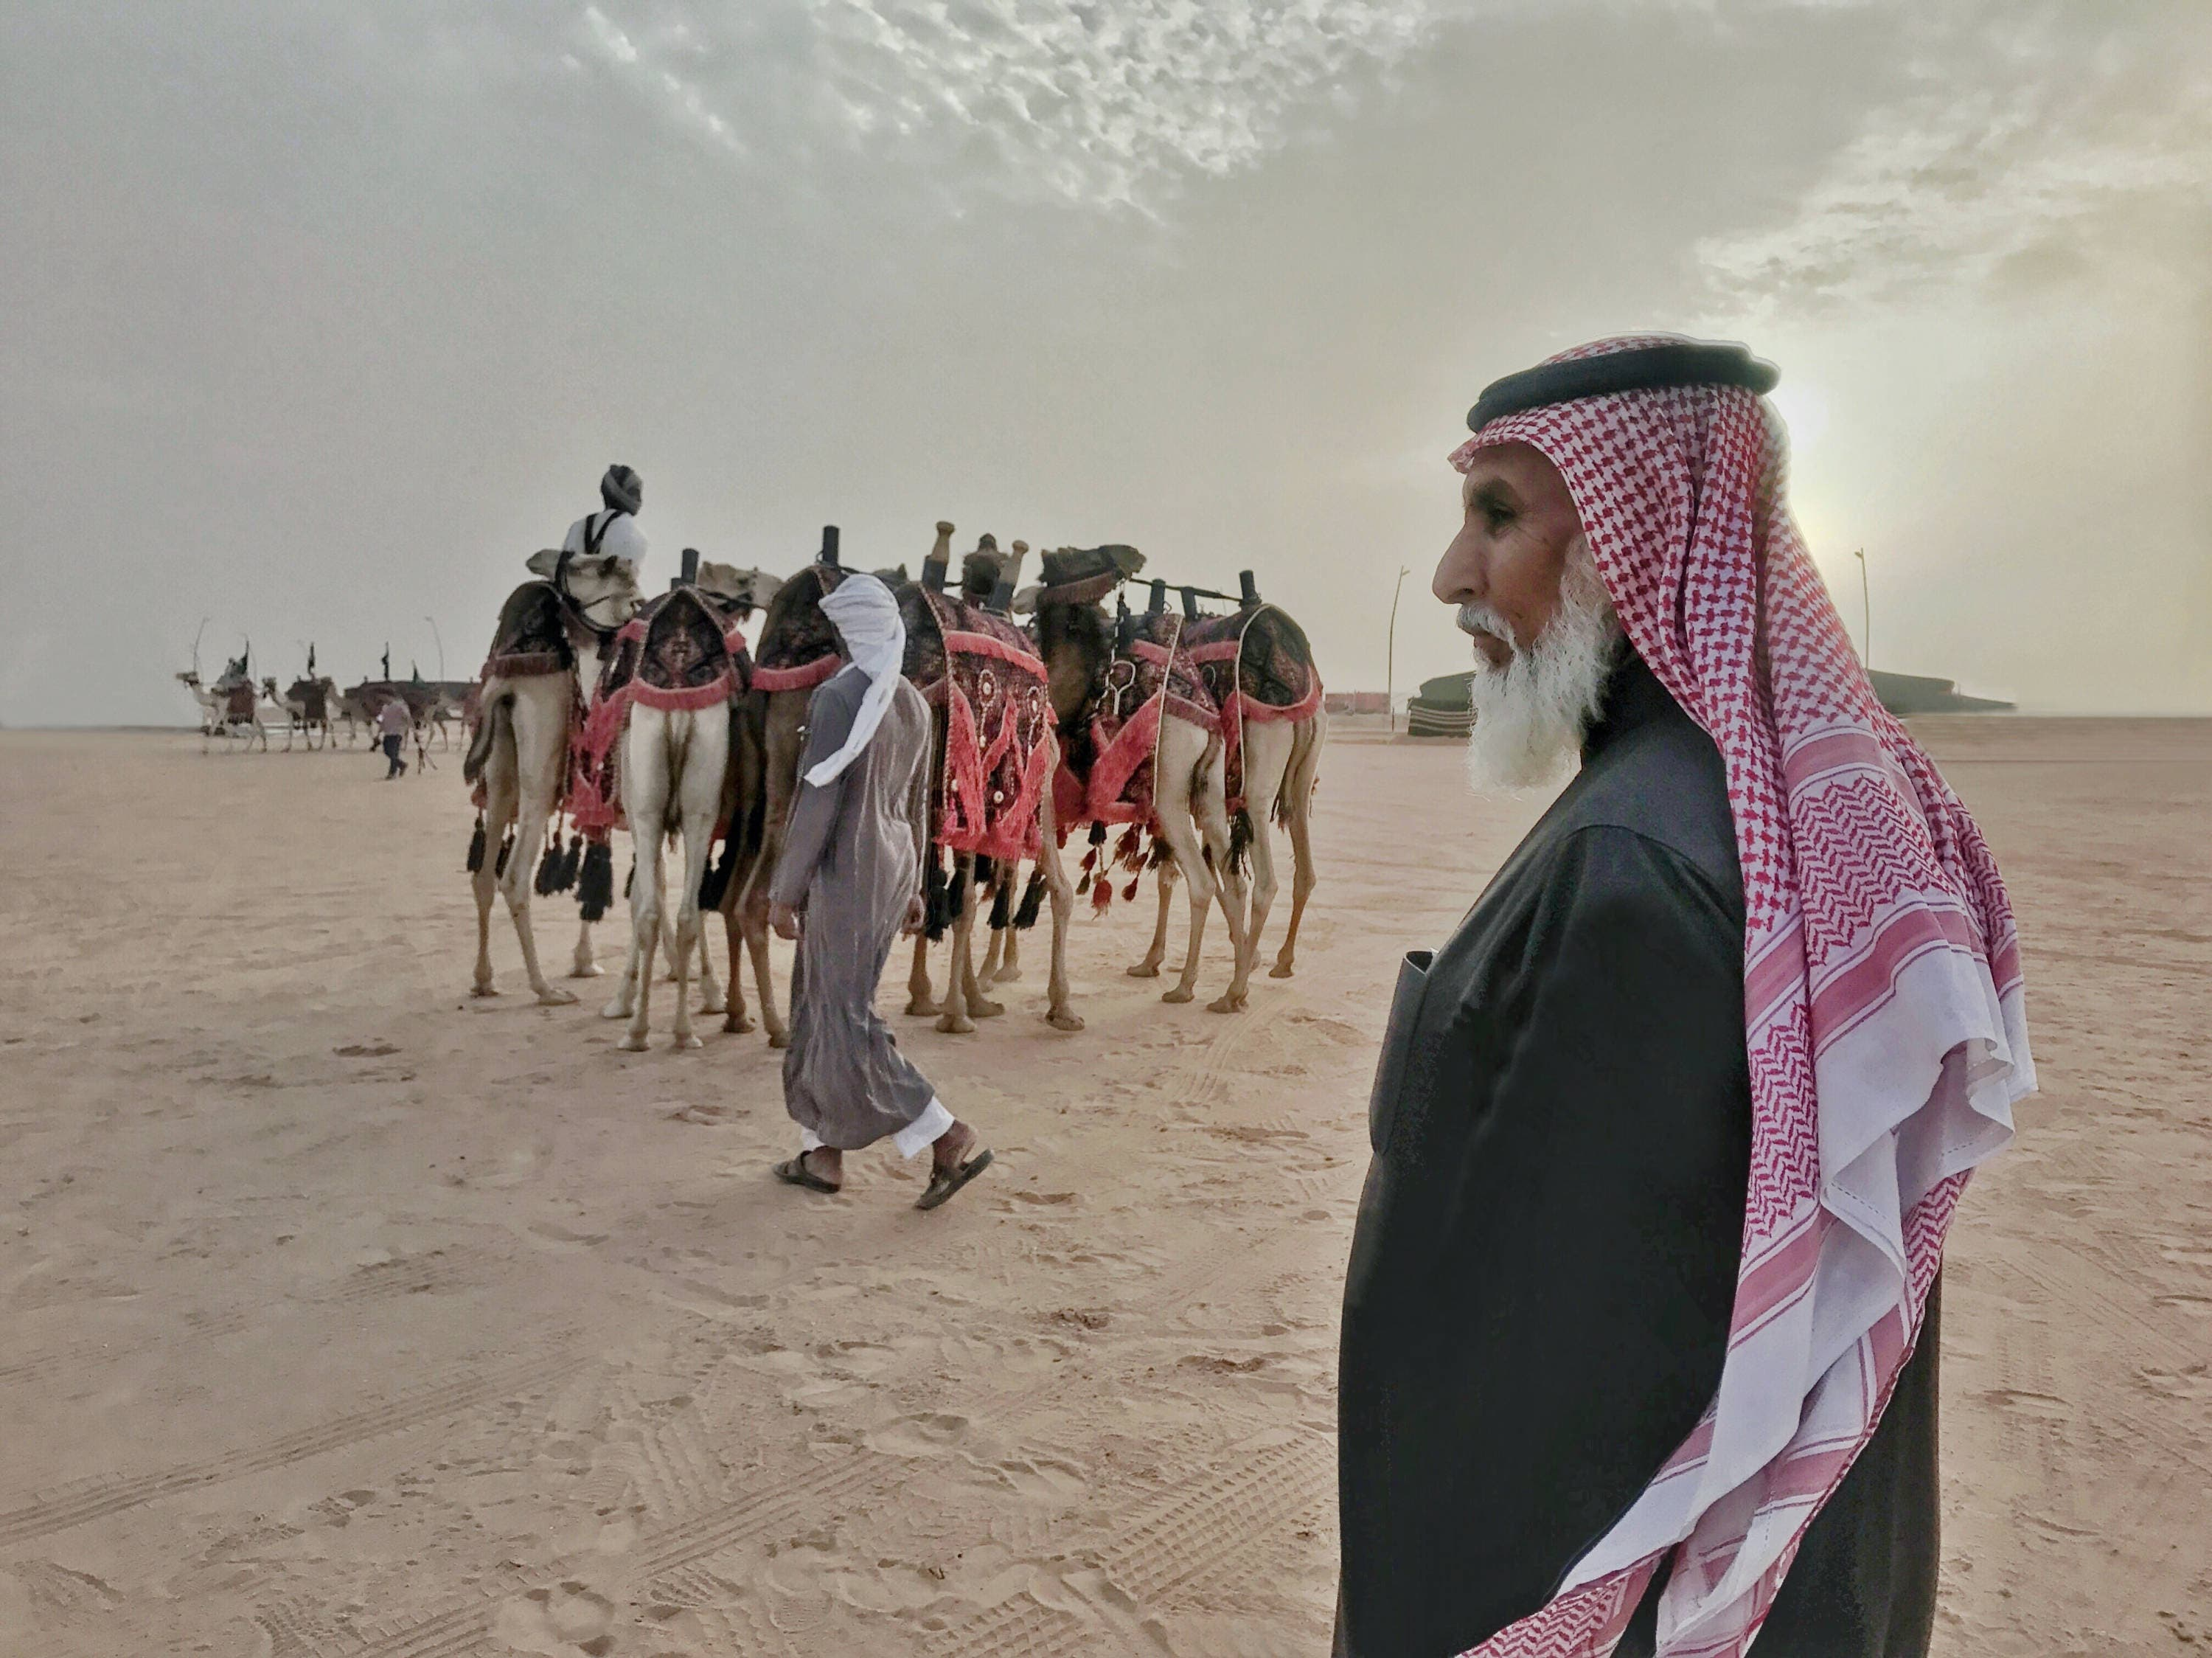 Why Street Photography is Easy for Norah Alamri In Saudi Arabia